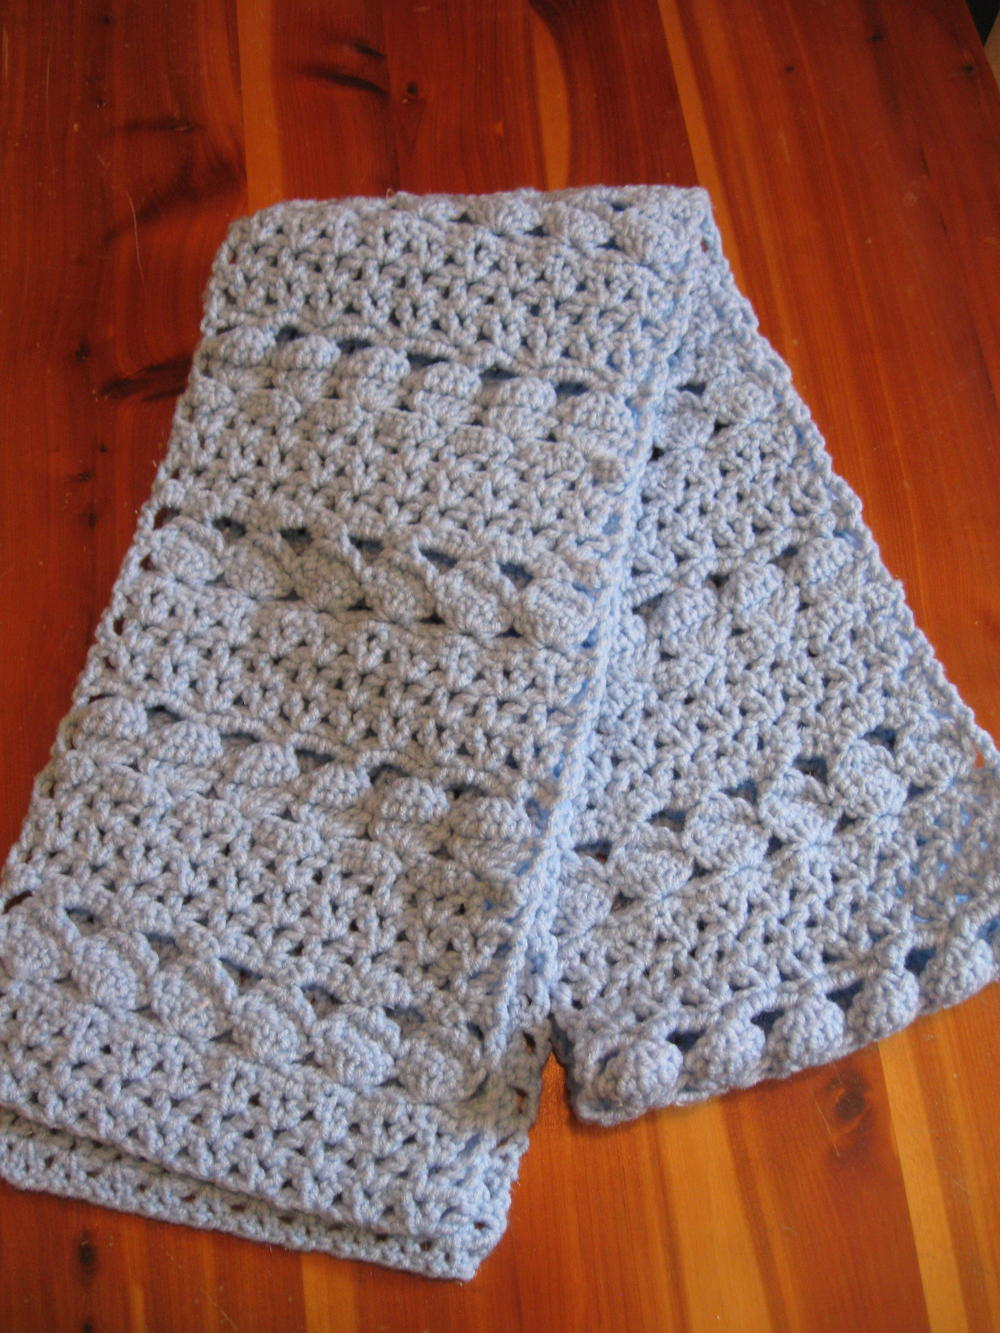 Free Crochet Patterns For Christmas Scarves : Cozy Blue Crochet Scarf AllFreeCrochet.com